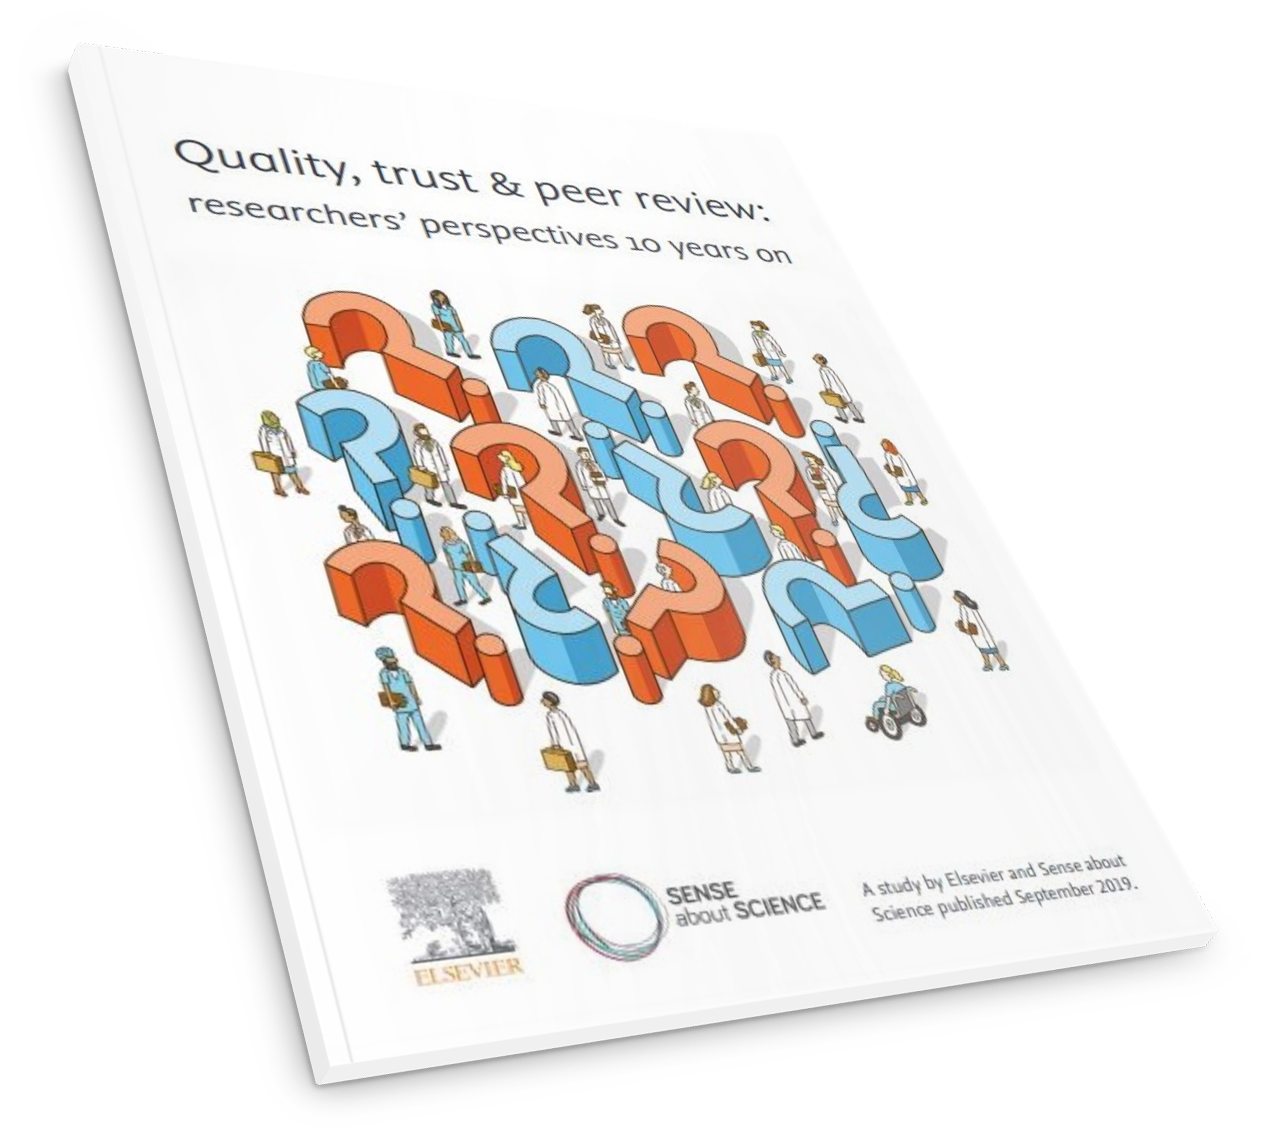 Trust in Research - RI | Elsevier